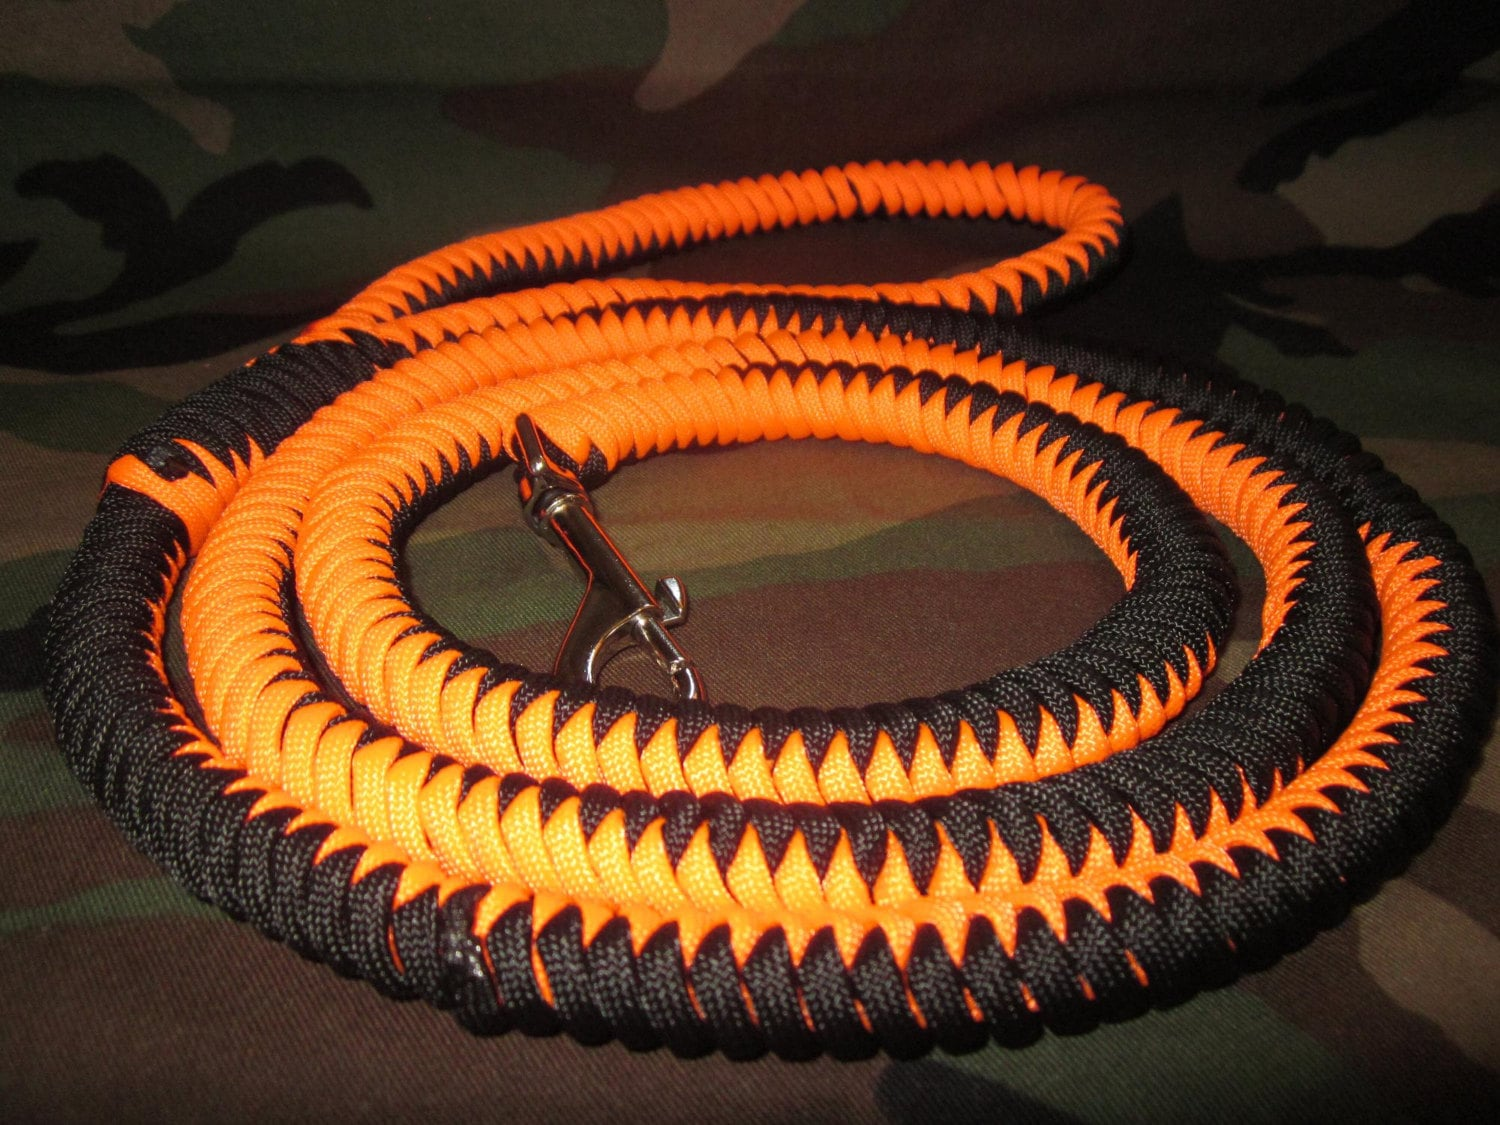 paracord dog leash instructions hubpages ForParacord Leash Instructions